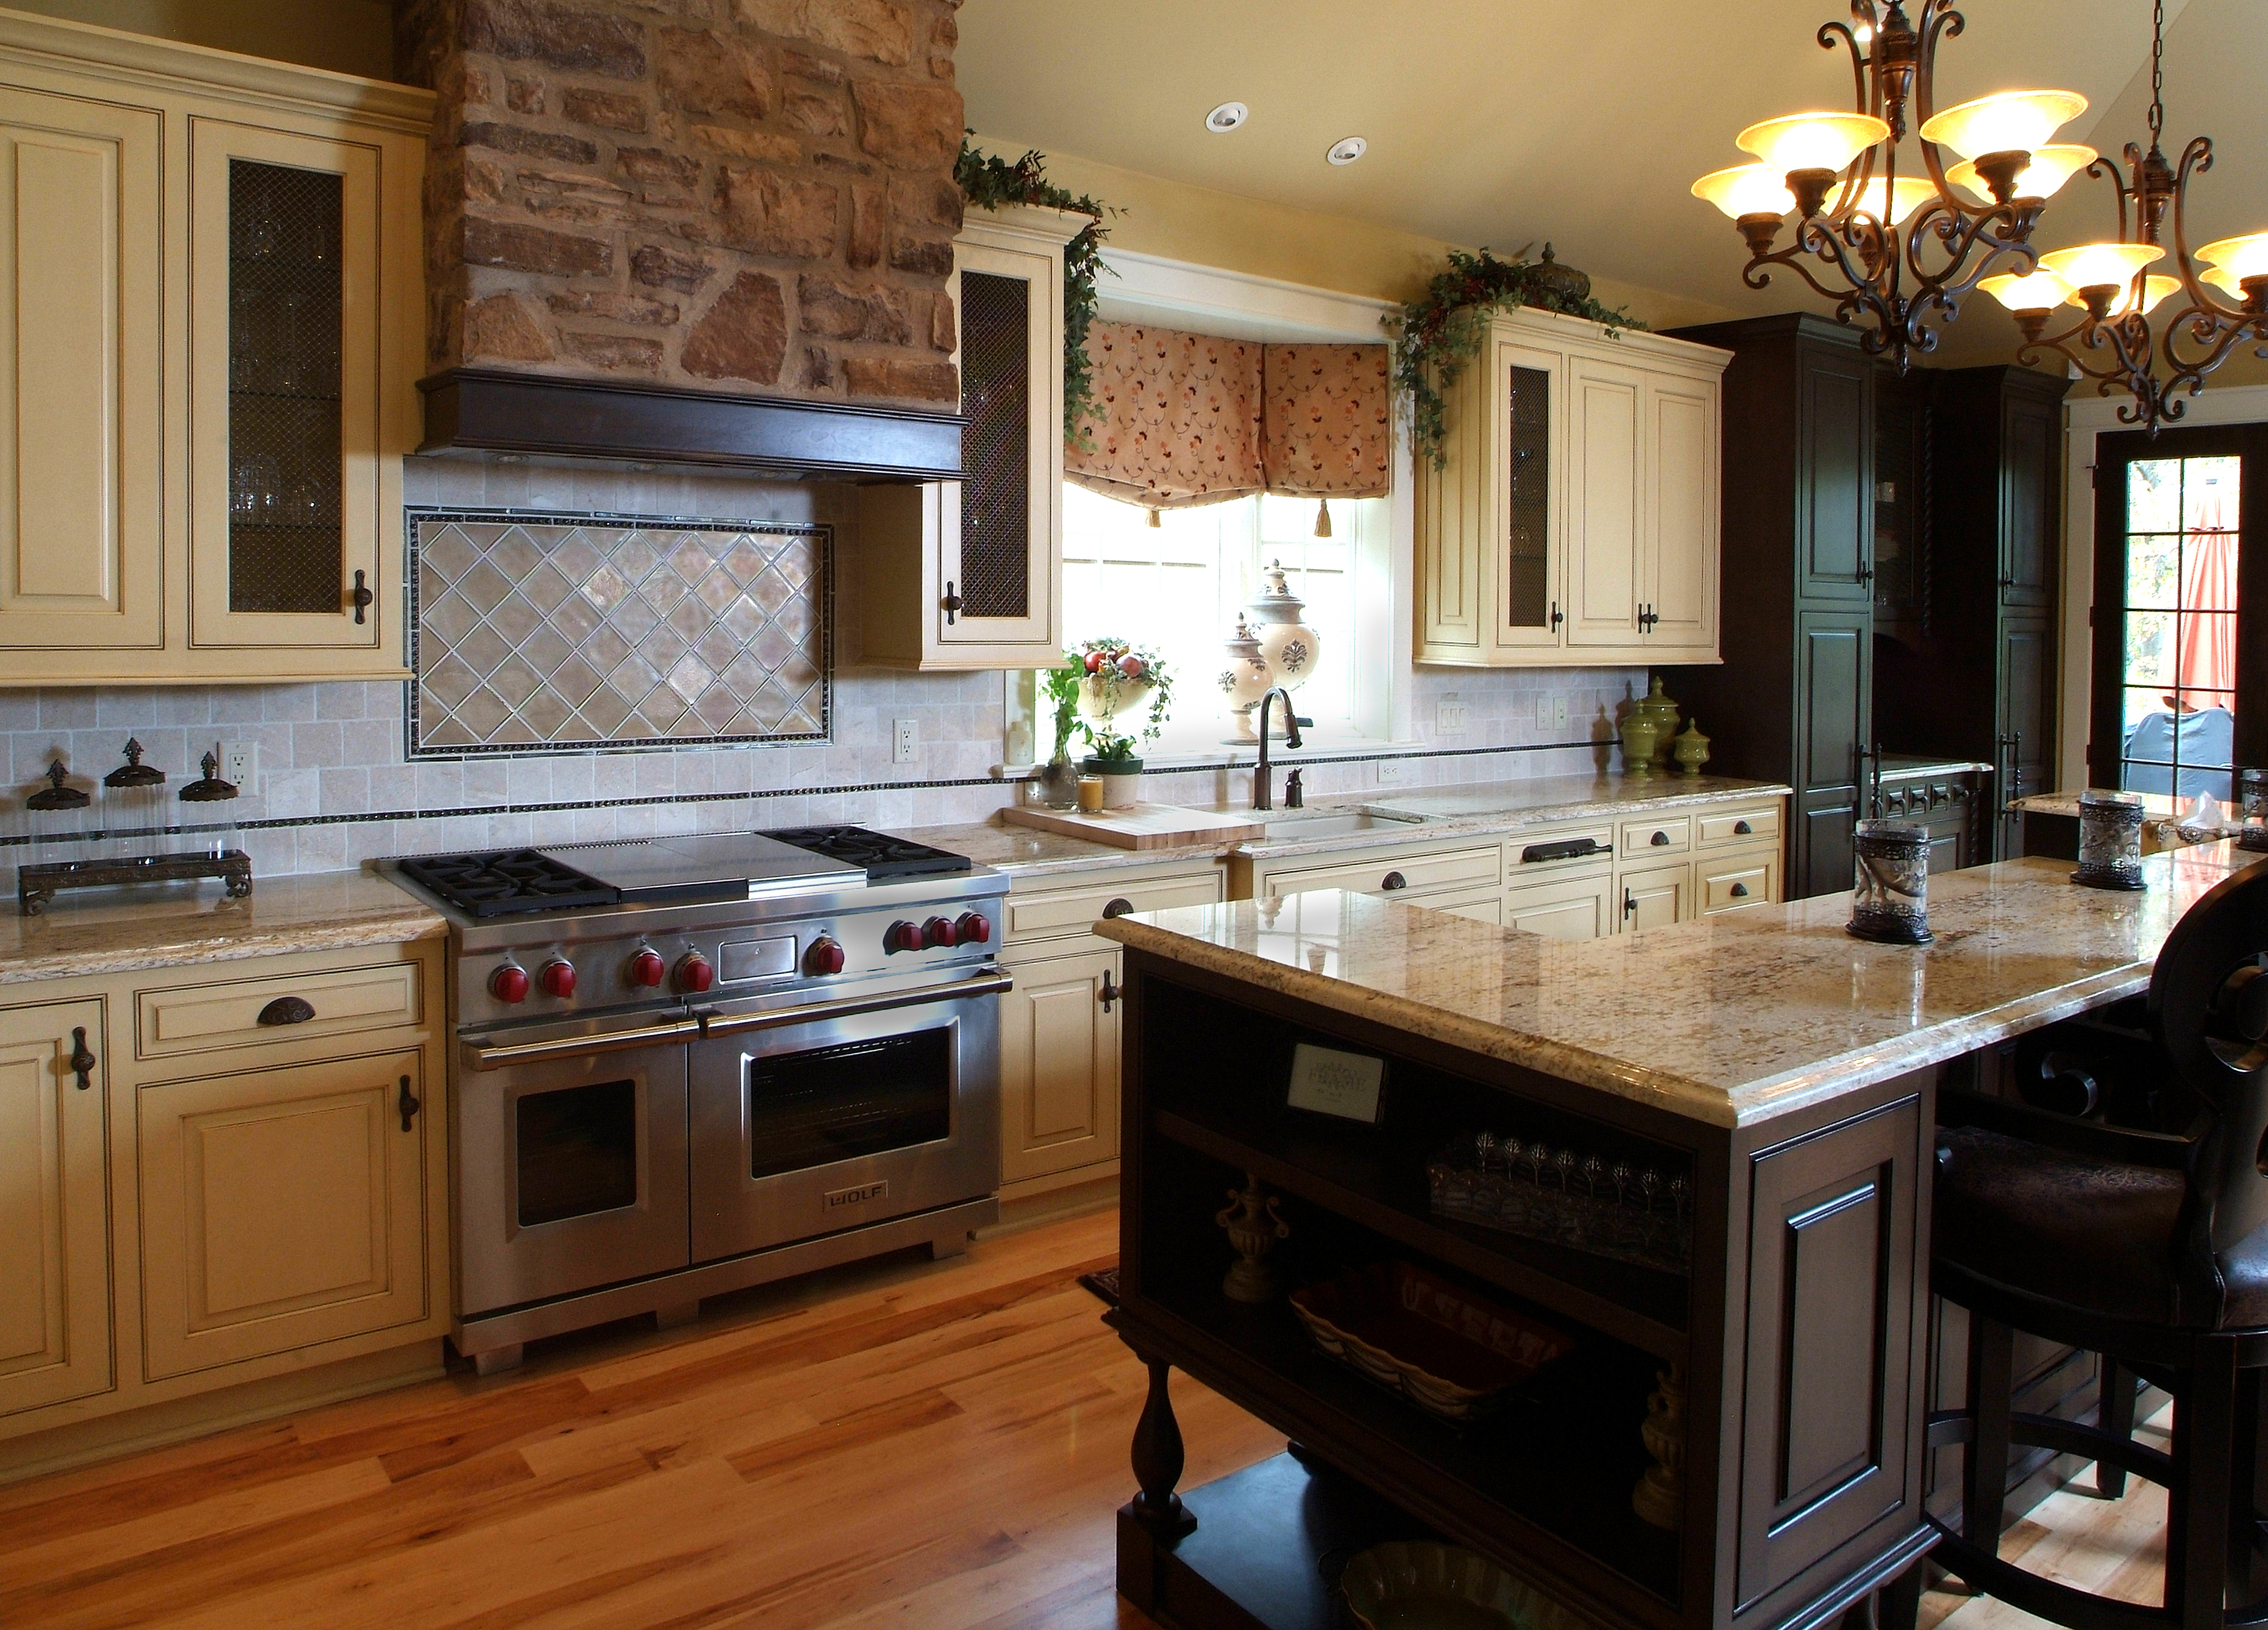 Featured Image of English Country Kitchen Interior